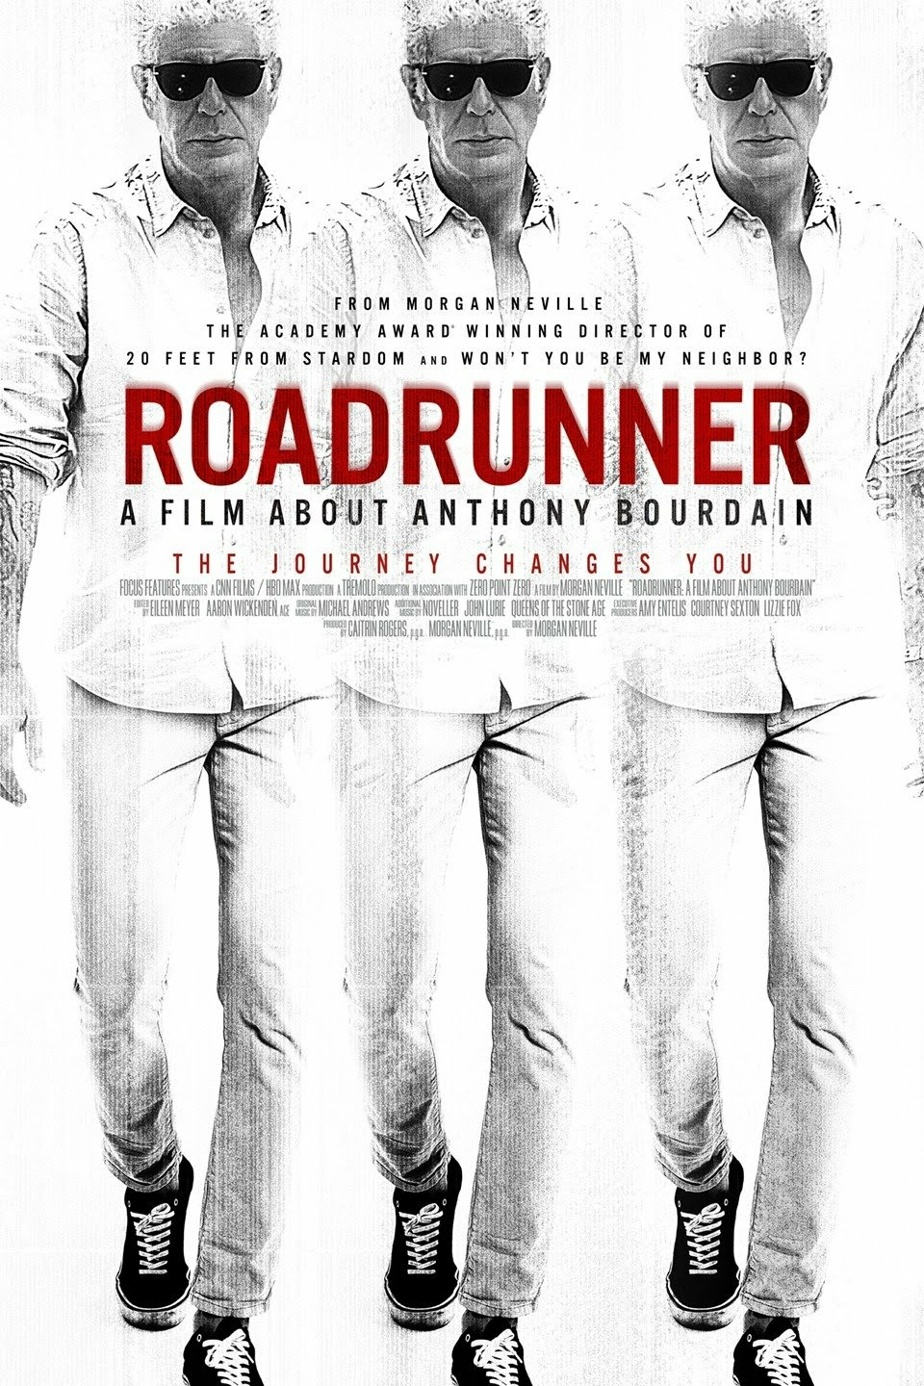 Roadrunner– A Film About Anthony Bourdain